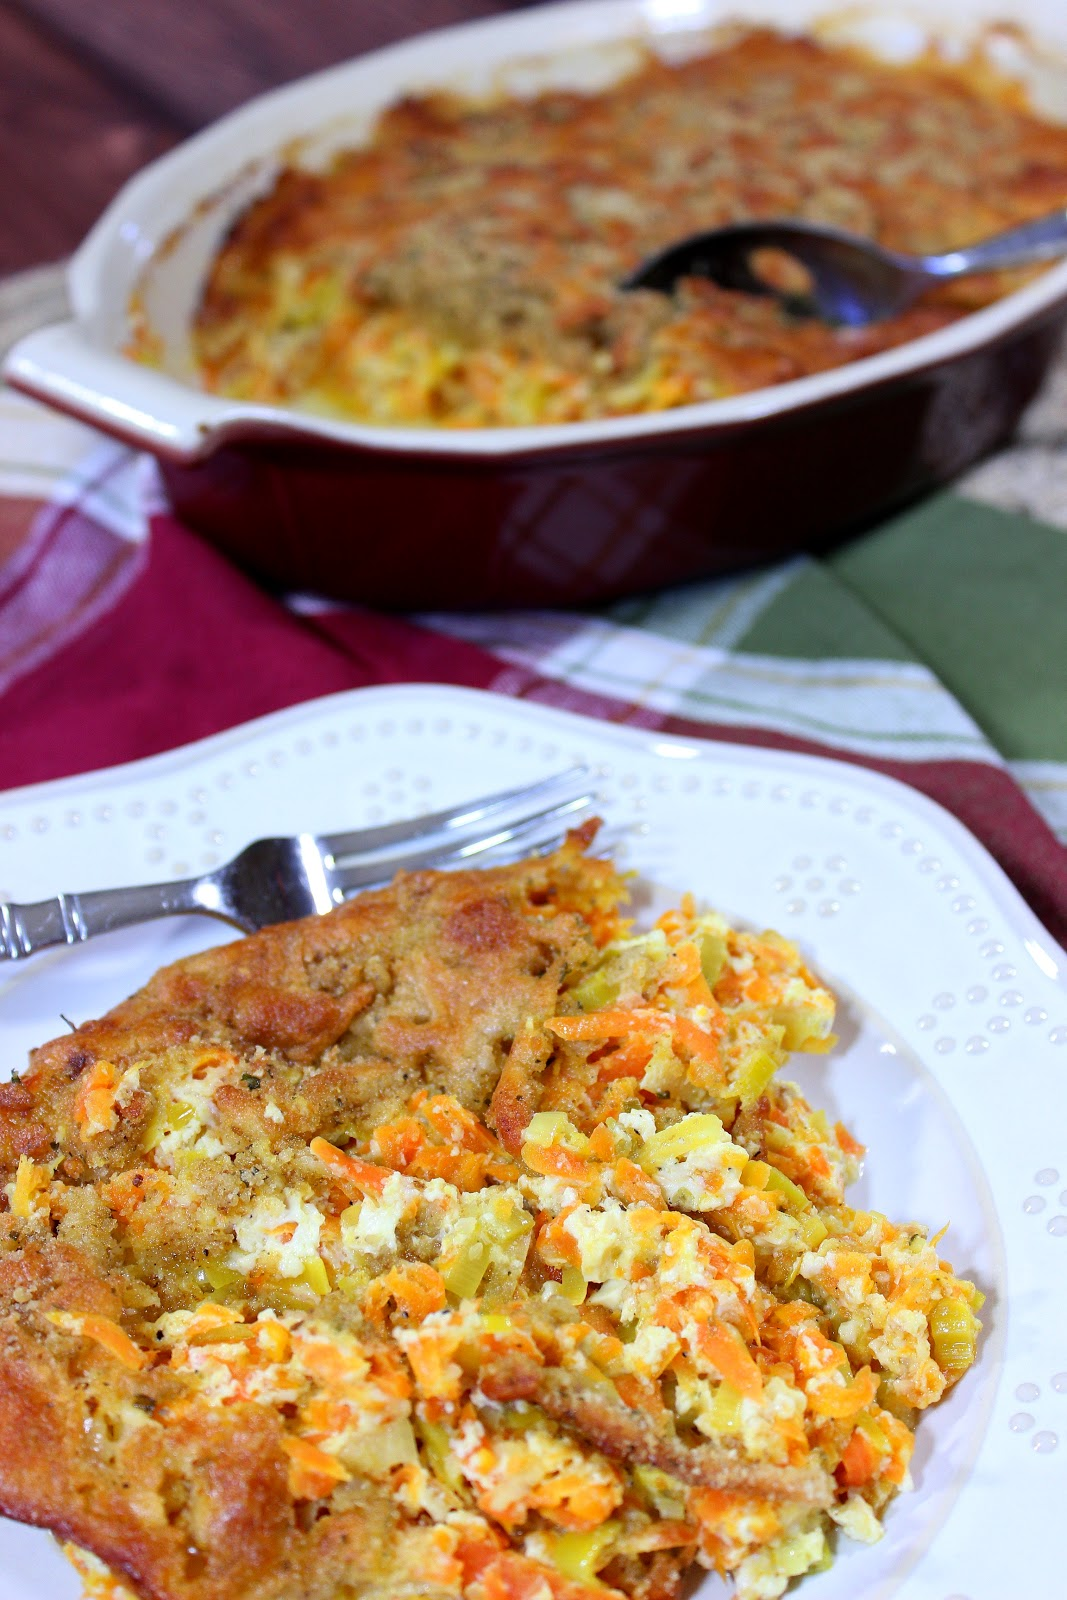 Carrot and Leek Gratin - http://www.kudoskitchenbyrenee.com/2015/03/carrot-and-leek-gratin-plus-cookbook-giveaway.html